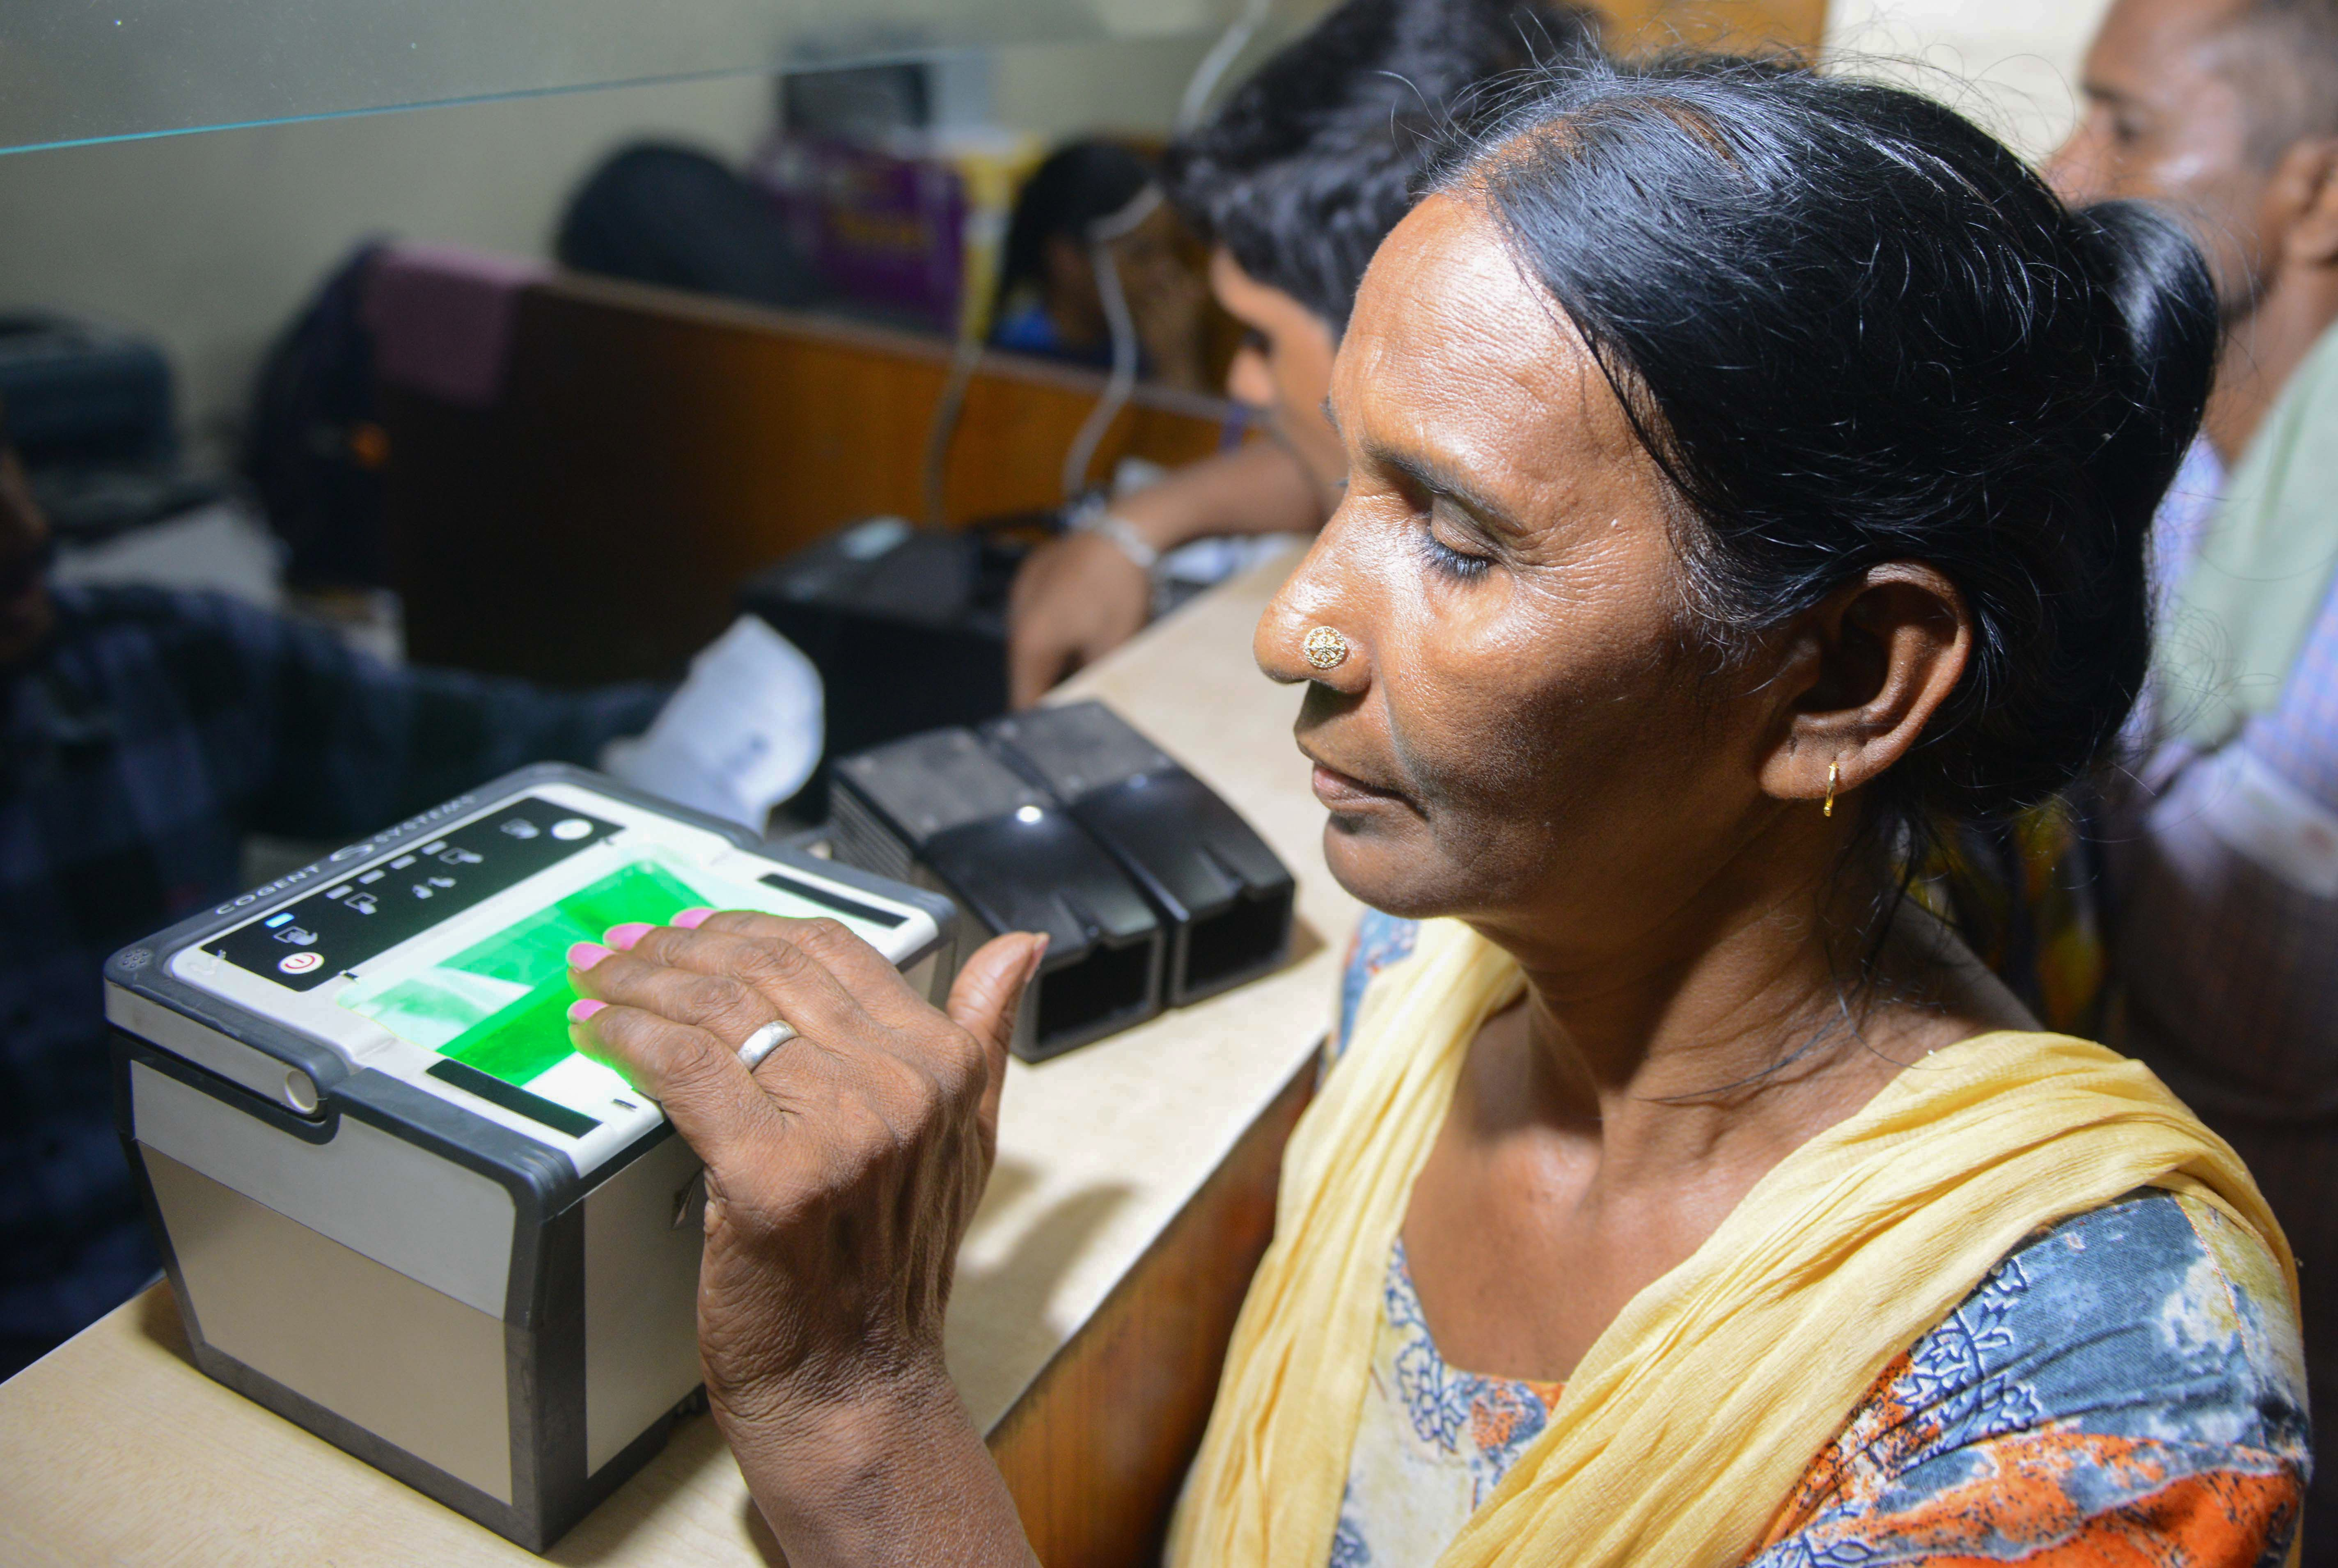 An Indian woman has her fingerprints read during the registration process for Aadhaar cards on July 17, 2018.